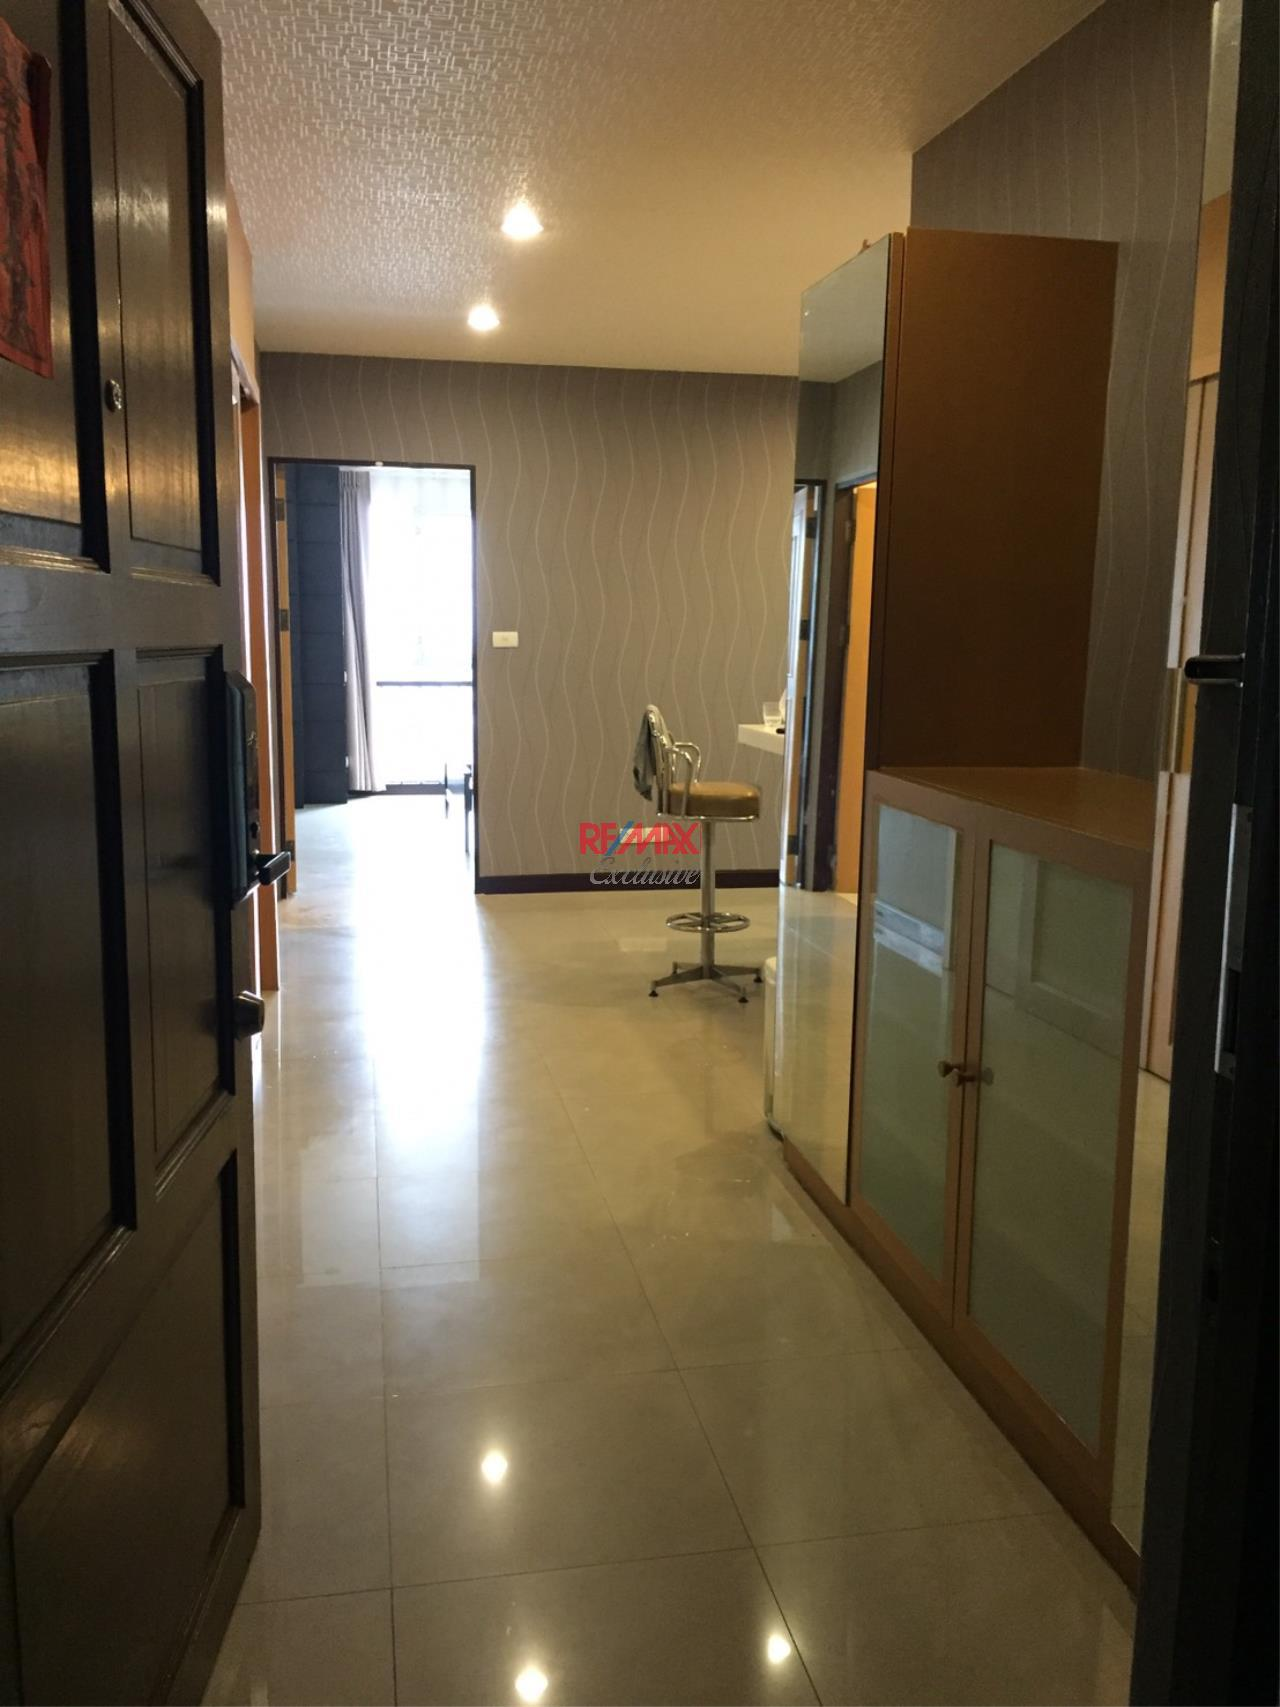 RE/MAX Exclusive Agency's NS Tower Central City Bangna, 118 Sqm. 1 Bedroom, Fully-Furnished, AMAZING VIEW for RENT AND SALE !!! 2